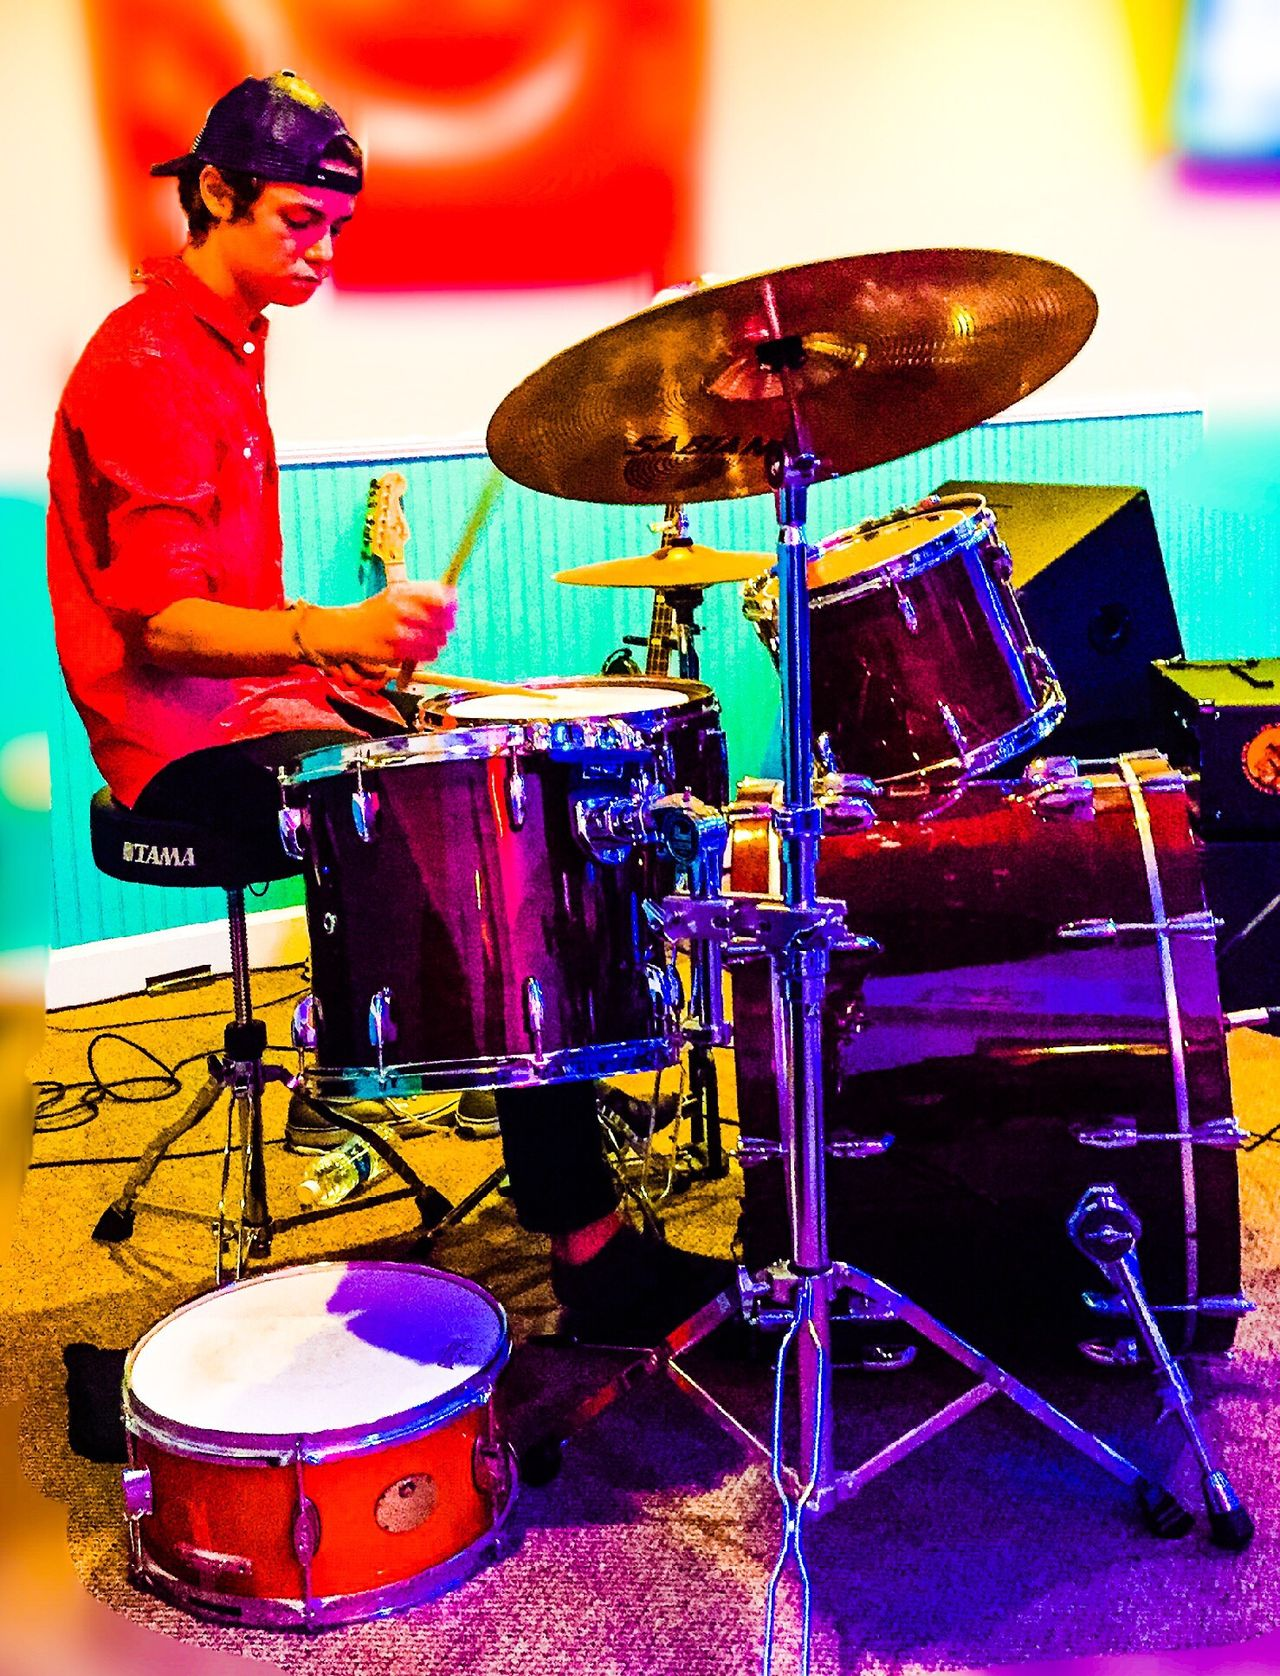 A boy and his drums. Drummer Drums Band Rocknroll Jamming Sticks Rocking Out